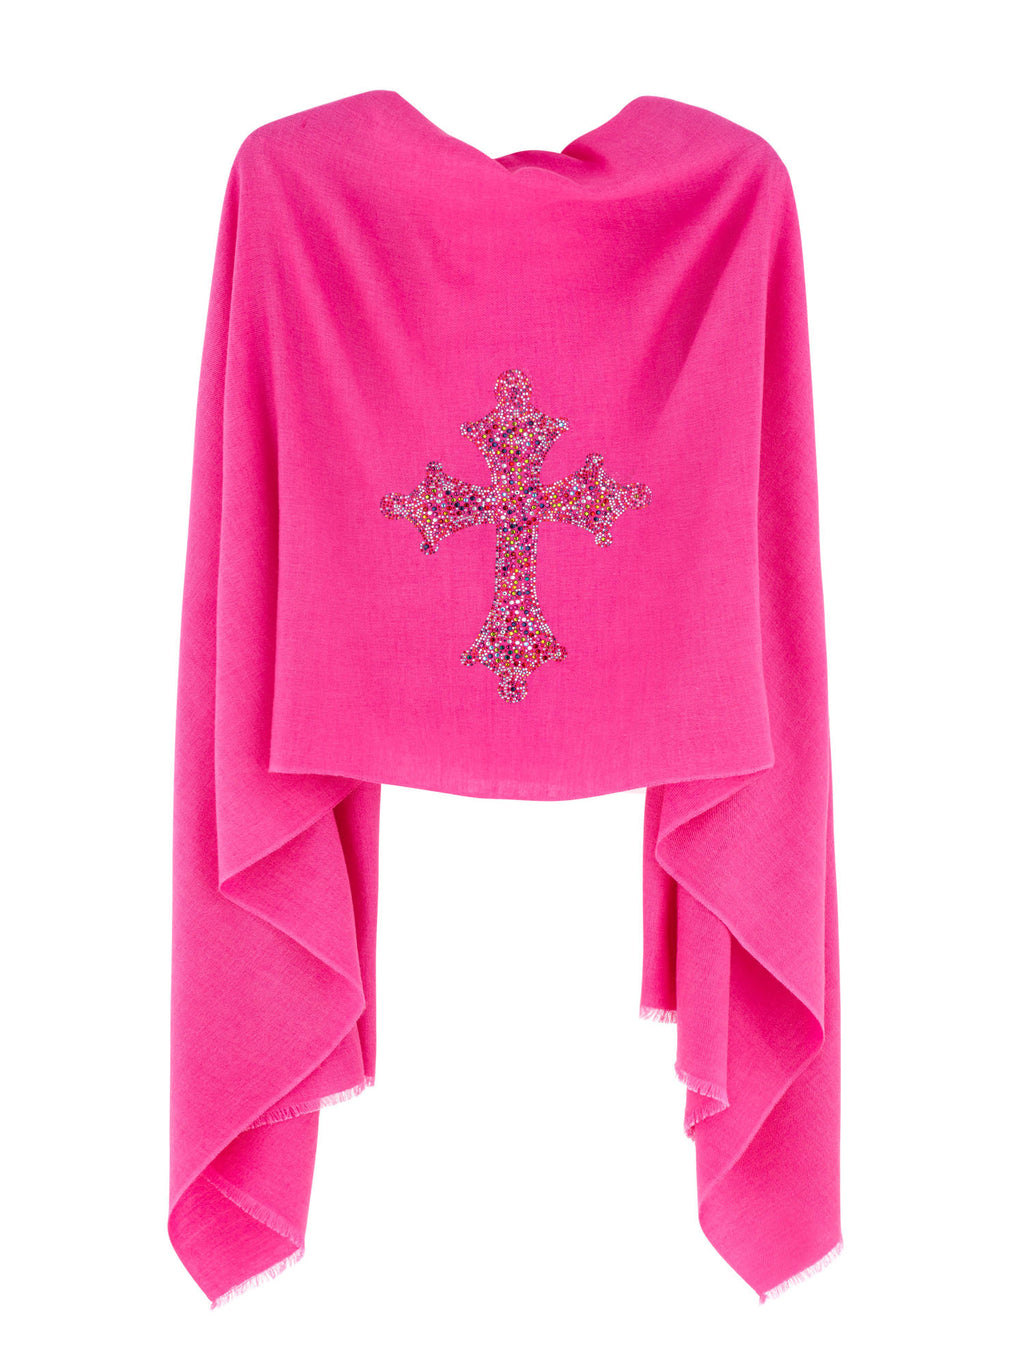 Crystal embellished cashmere pashmina shawl, pink with cross